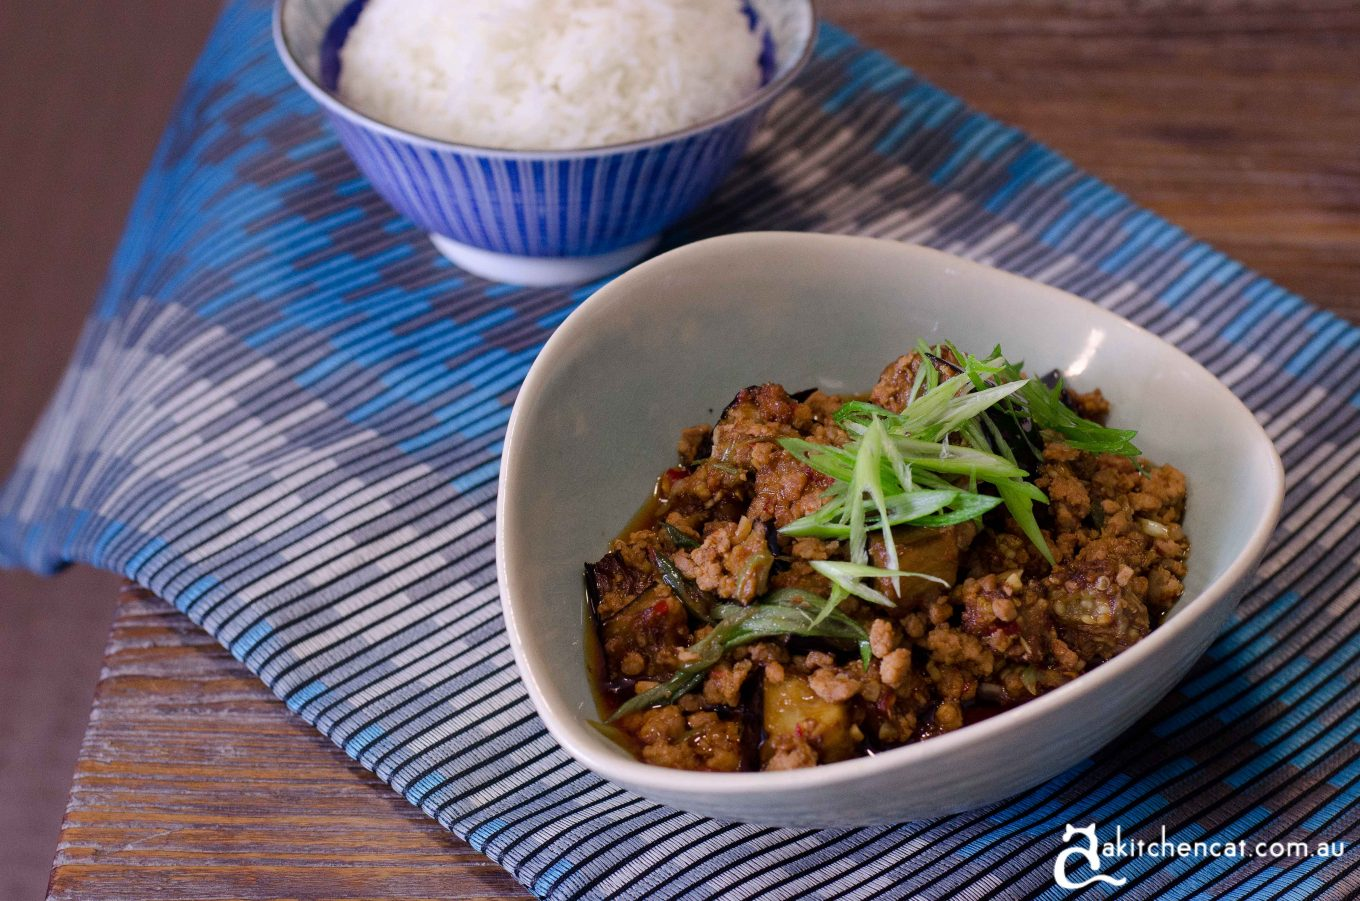 Stir-fried Pork and Eggplant